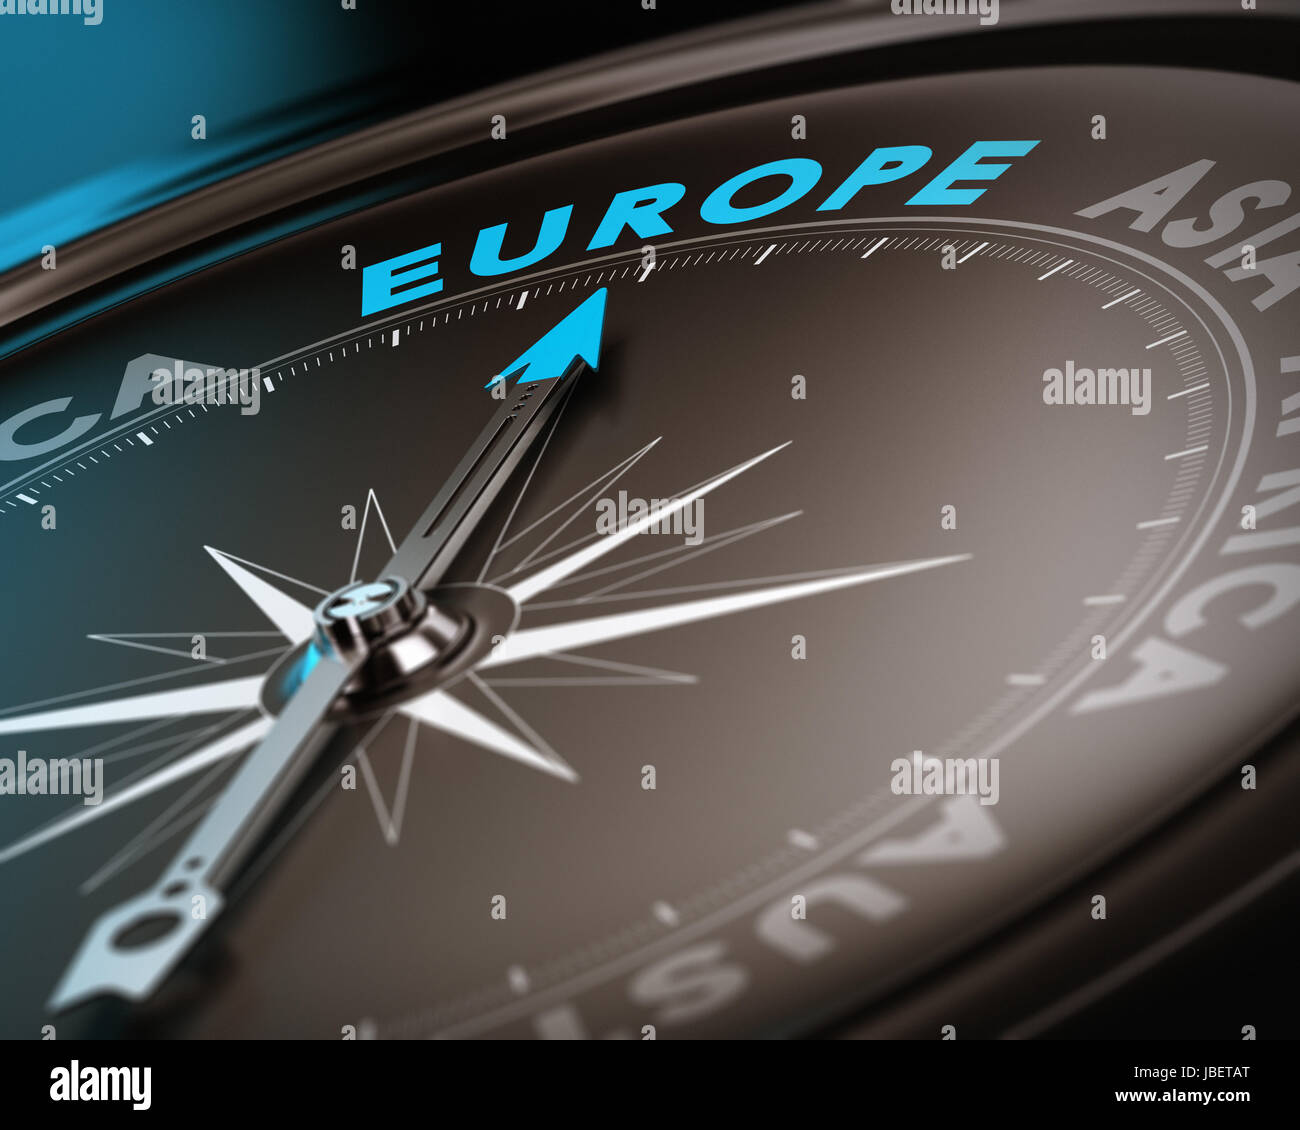 Abstract compass needle pointing the destination europe, blue and brown tones with focus on the main word. Concept - Stock Image